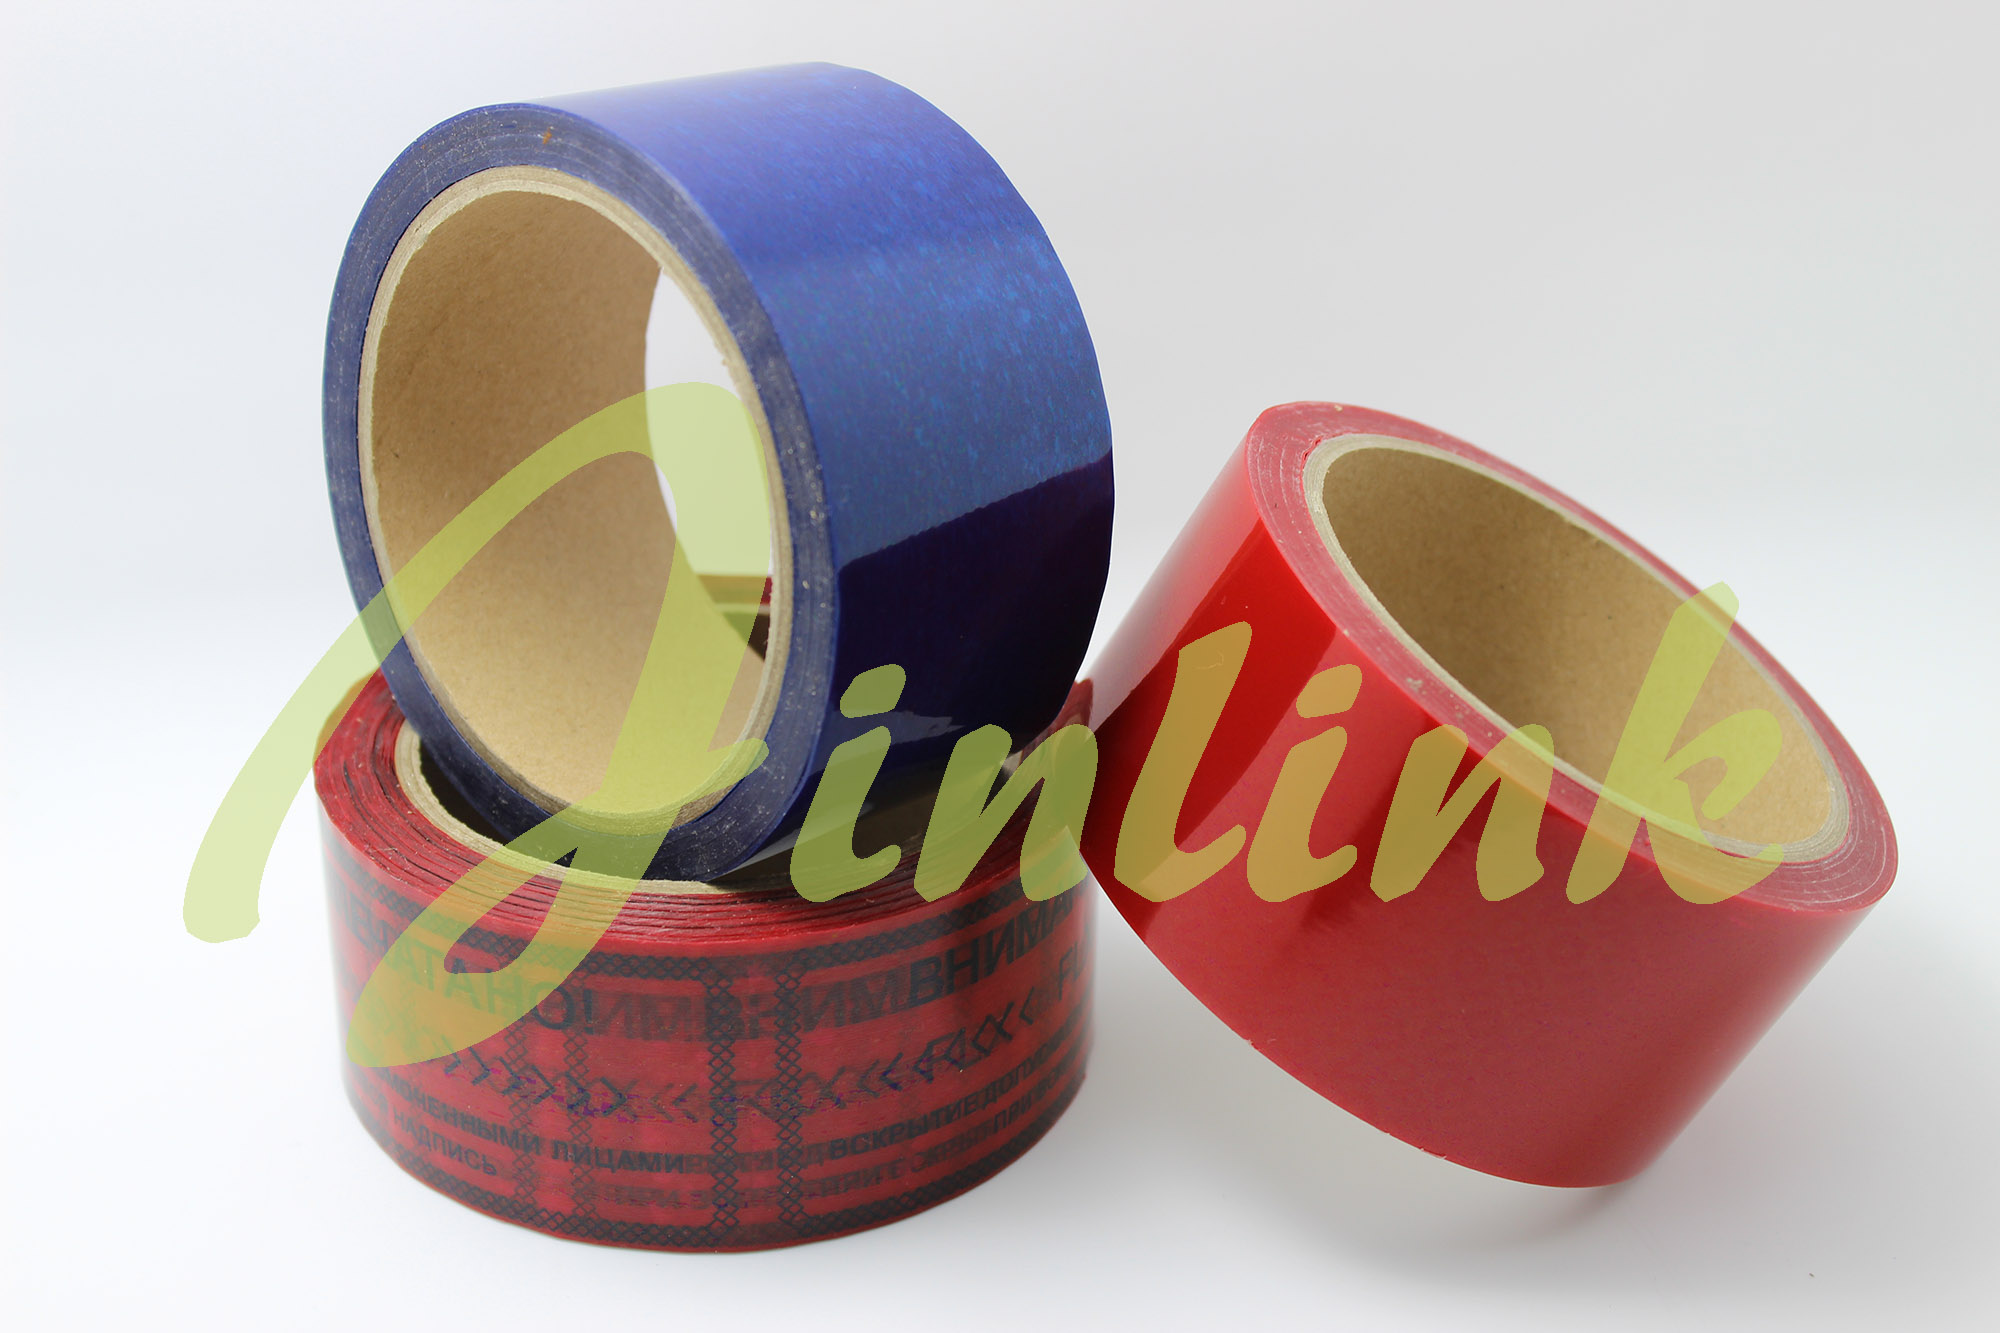 Do You Know Tamper Evident Security Tape Characteristics?